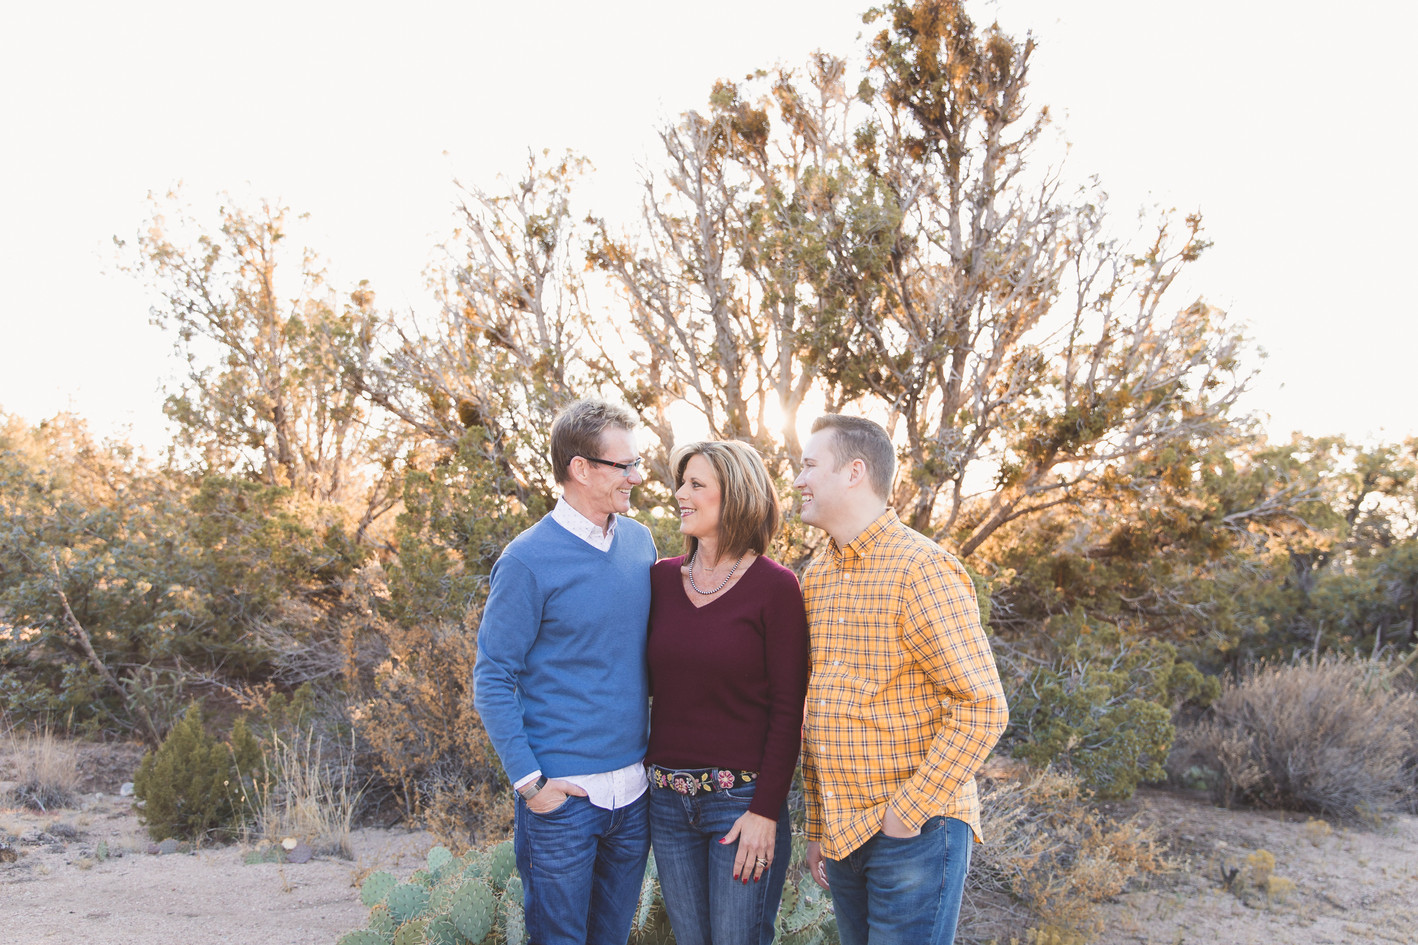 TurnerFamily-KateBucklesPhotography-1002